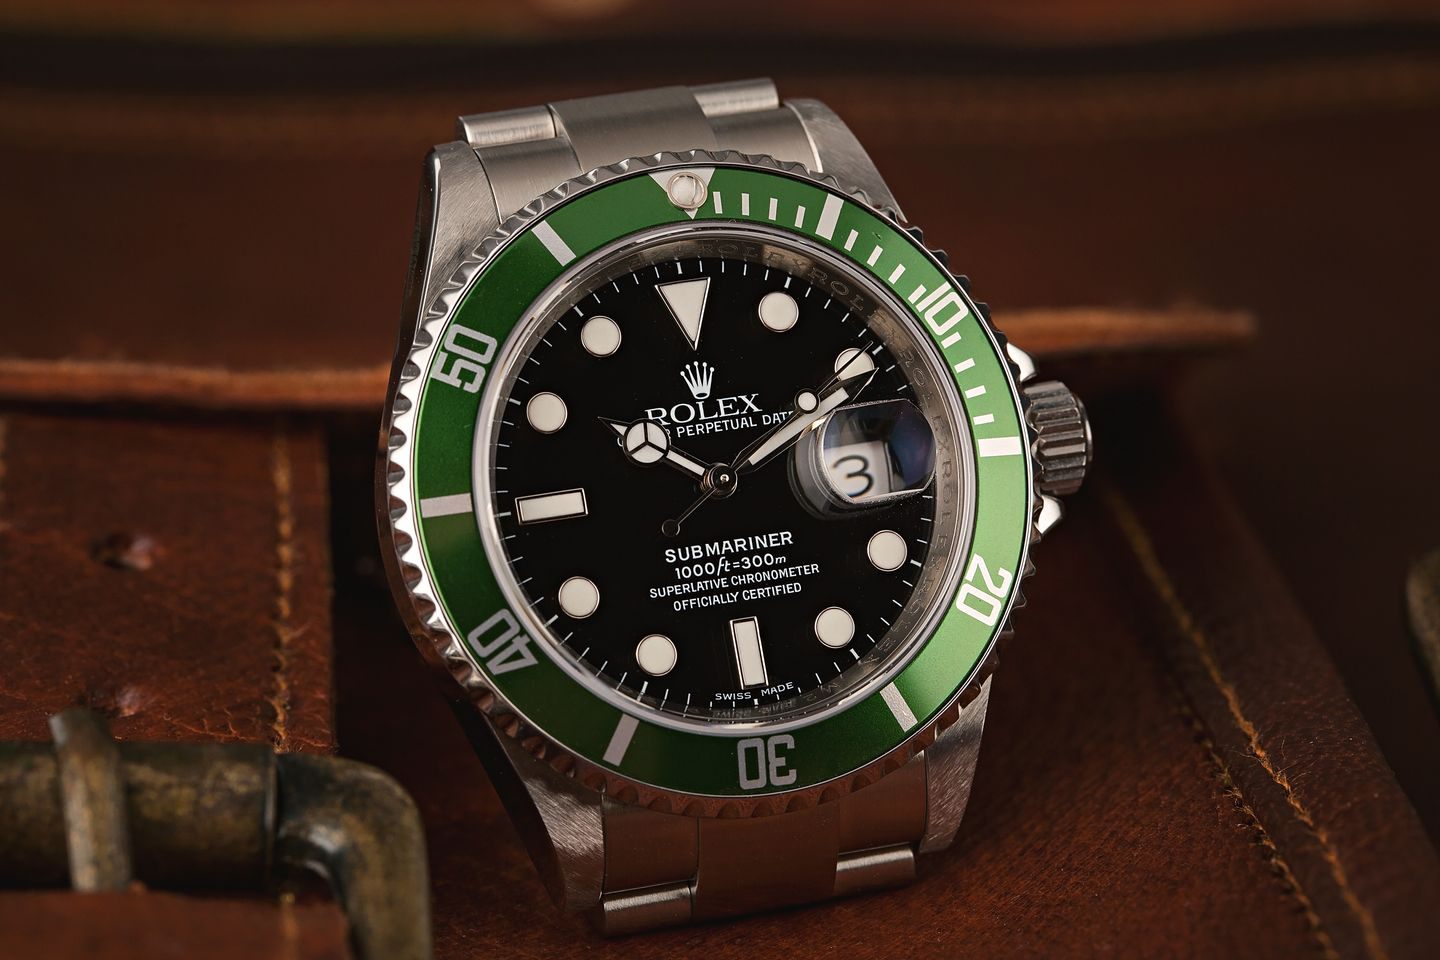 Green Rolex Submariner Black Dial Collectors Guide Kermit 16610LV